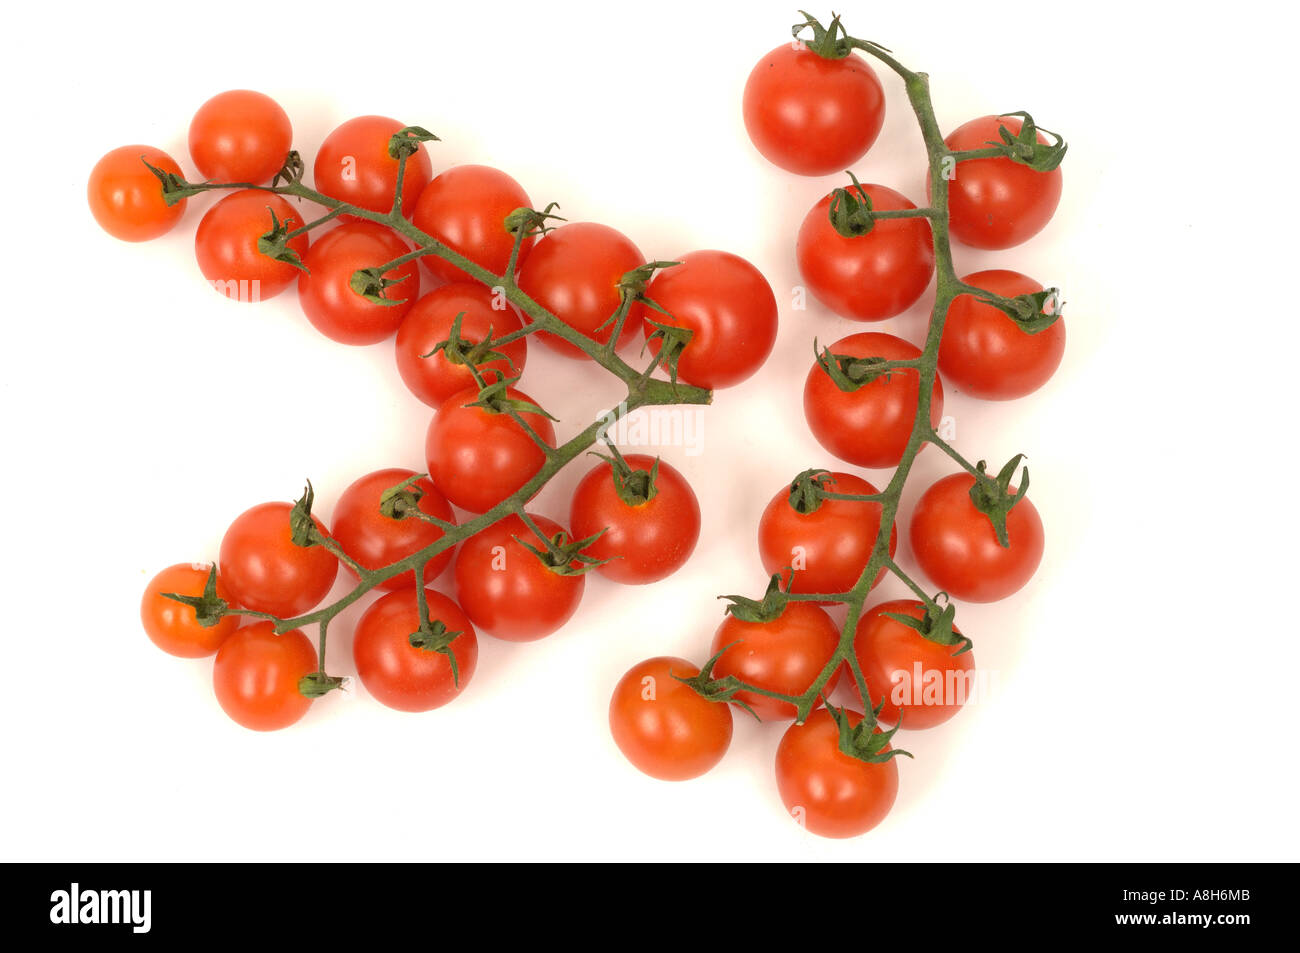 Vegetable produce typical supermarket bought tomatoes on the vine - Stock Image